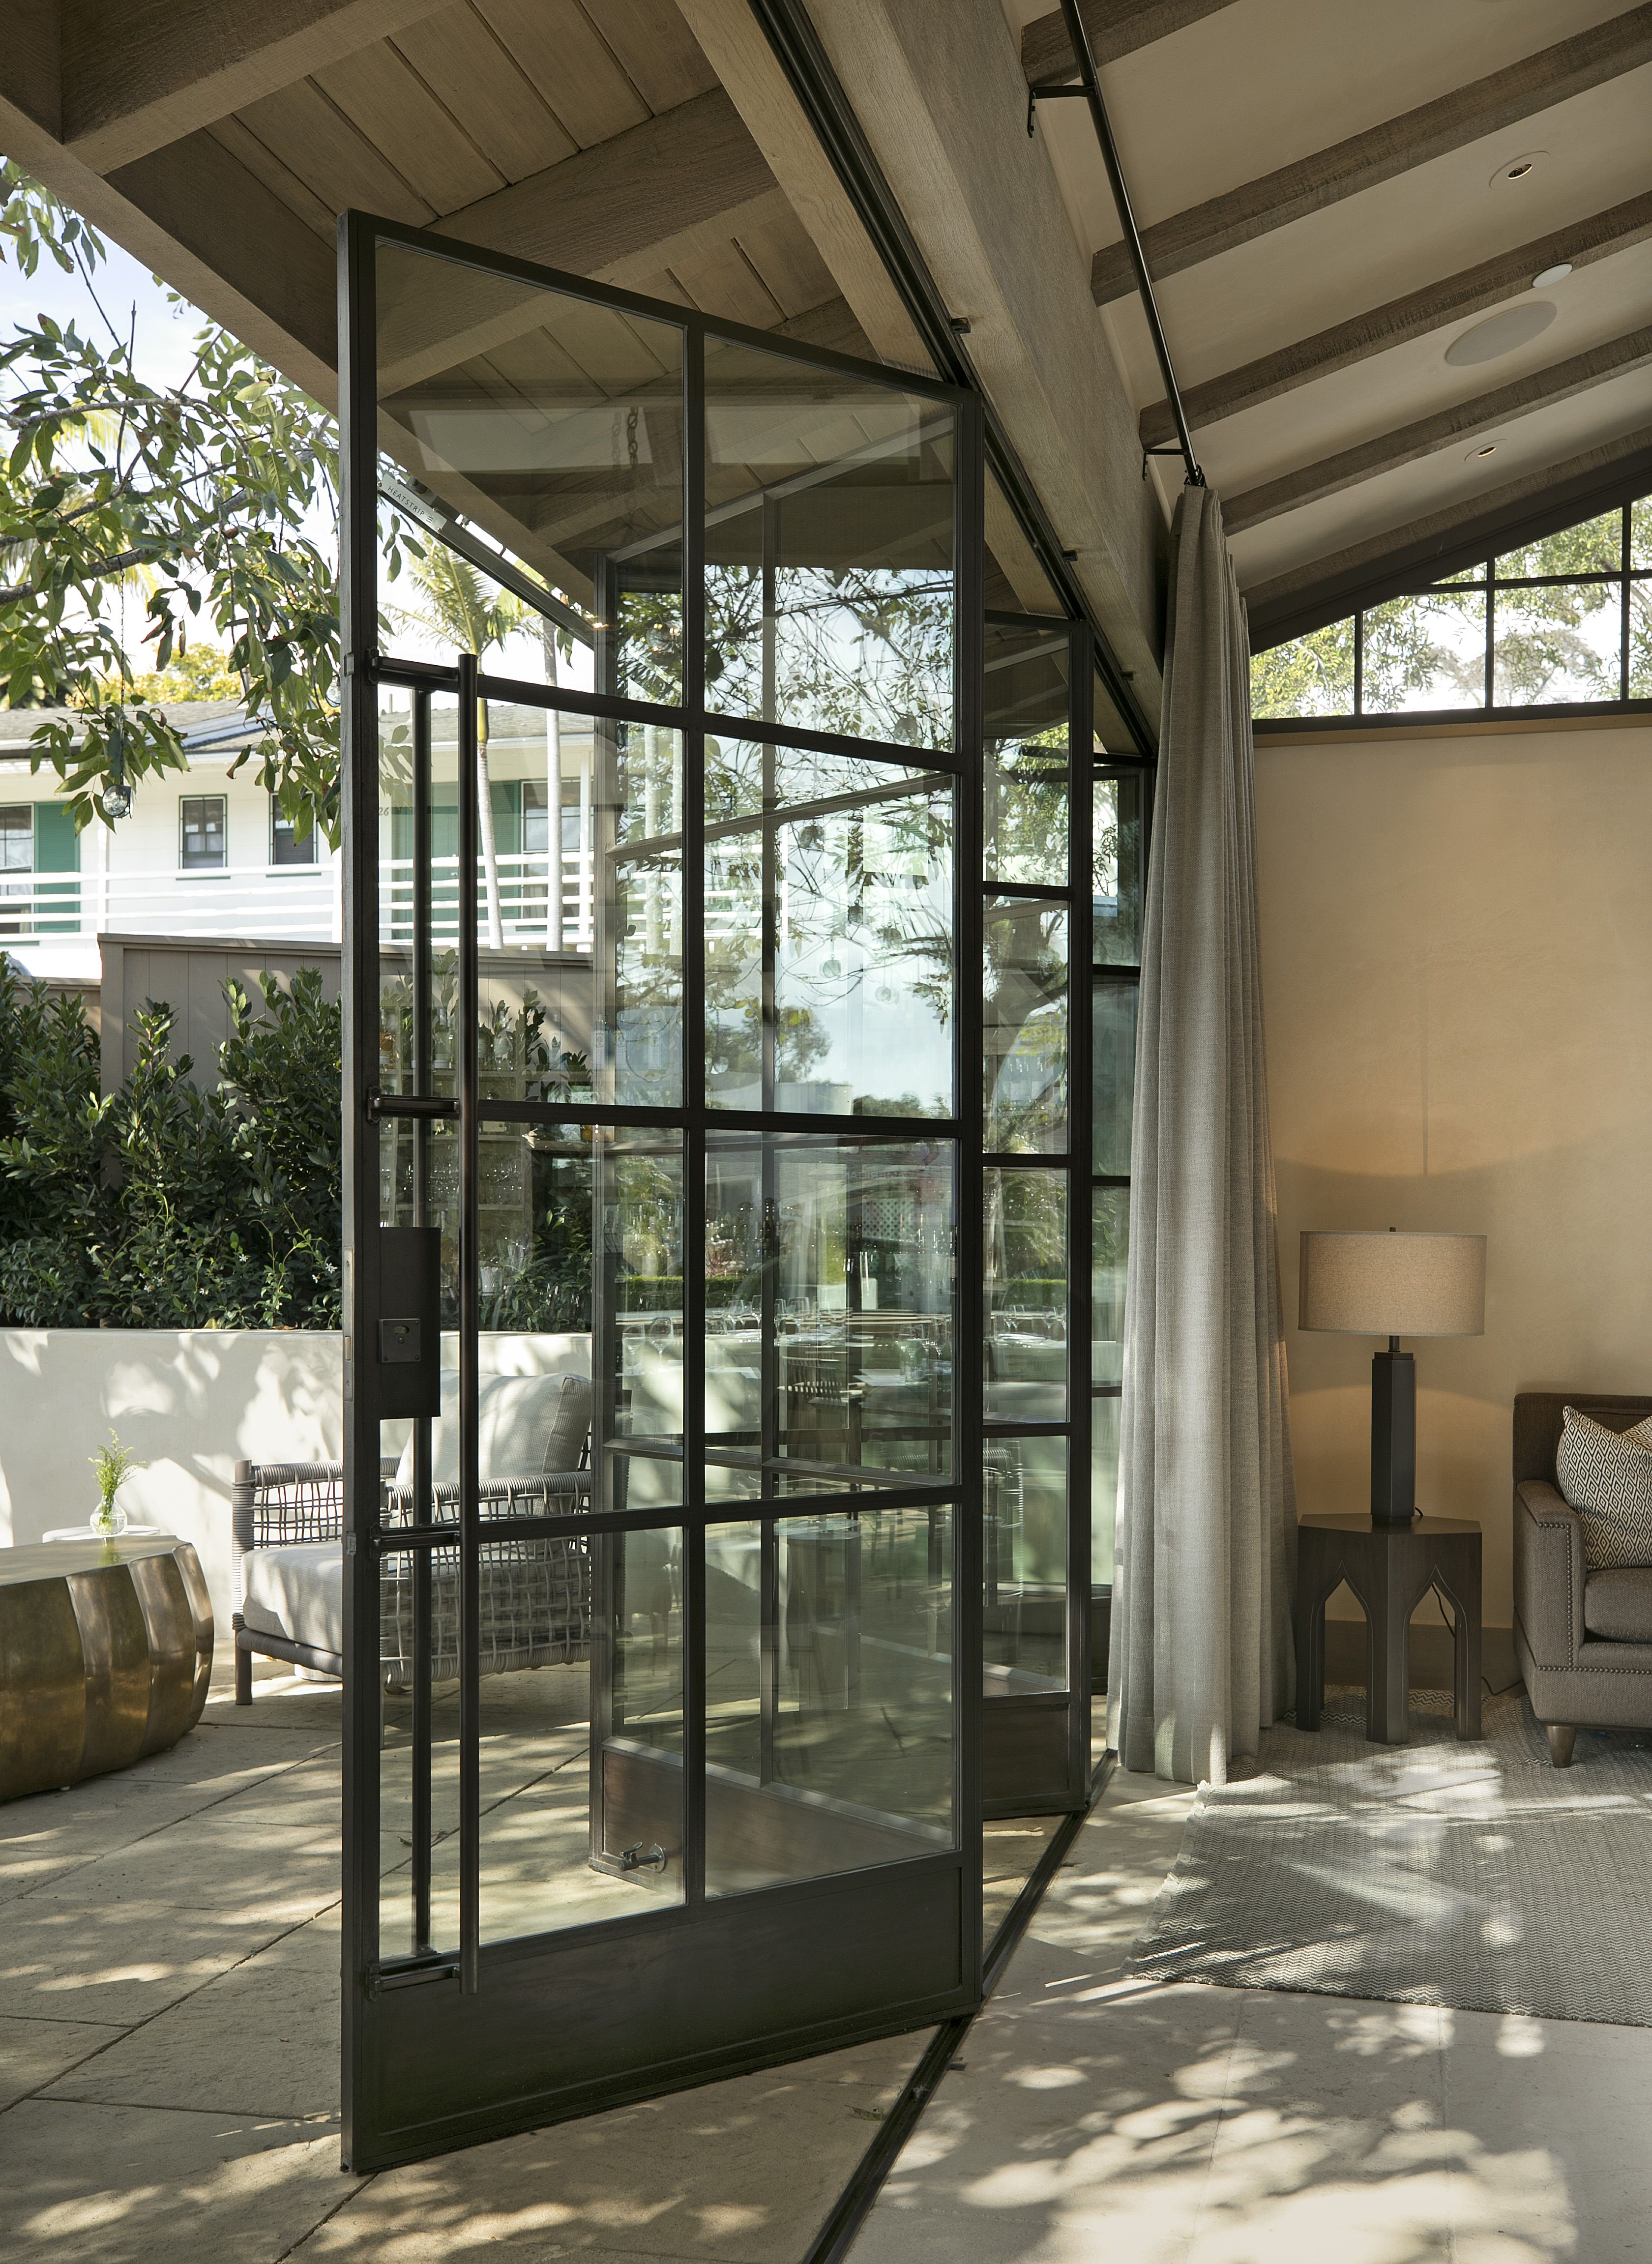 Window ideas for a sunroom  bifolding glass exterior doors  home ideas in   pinterest